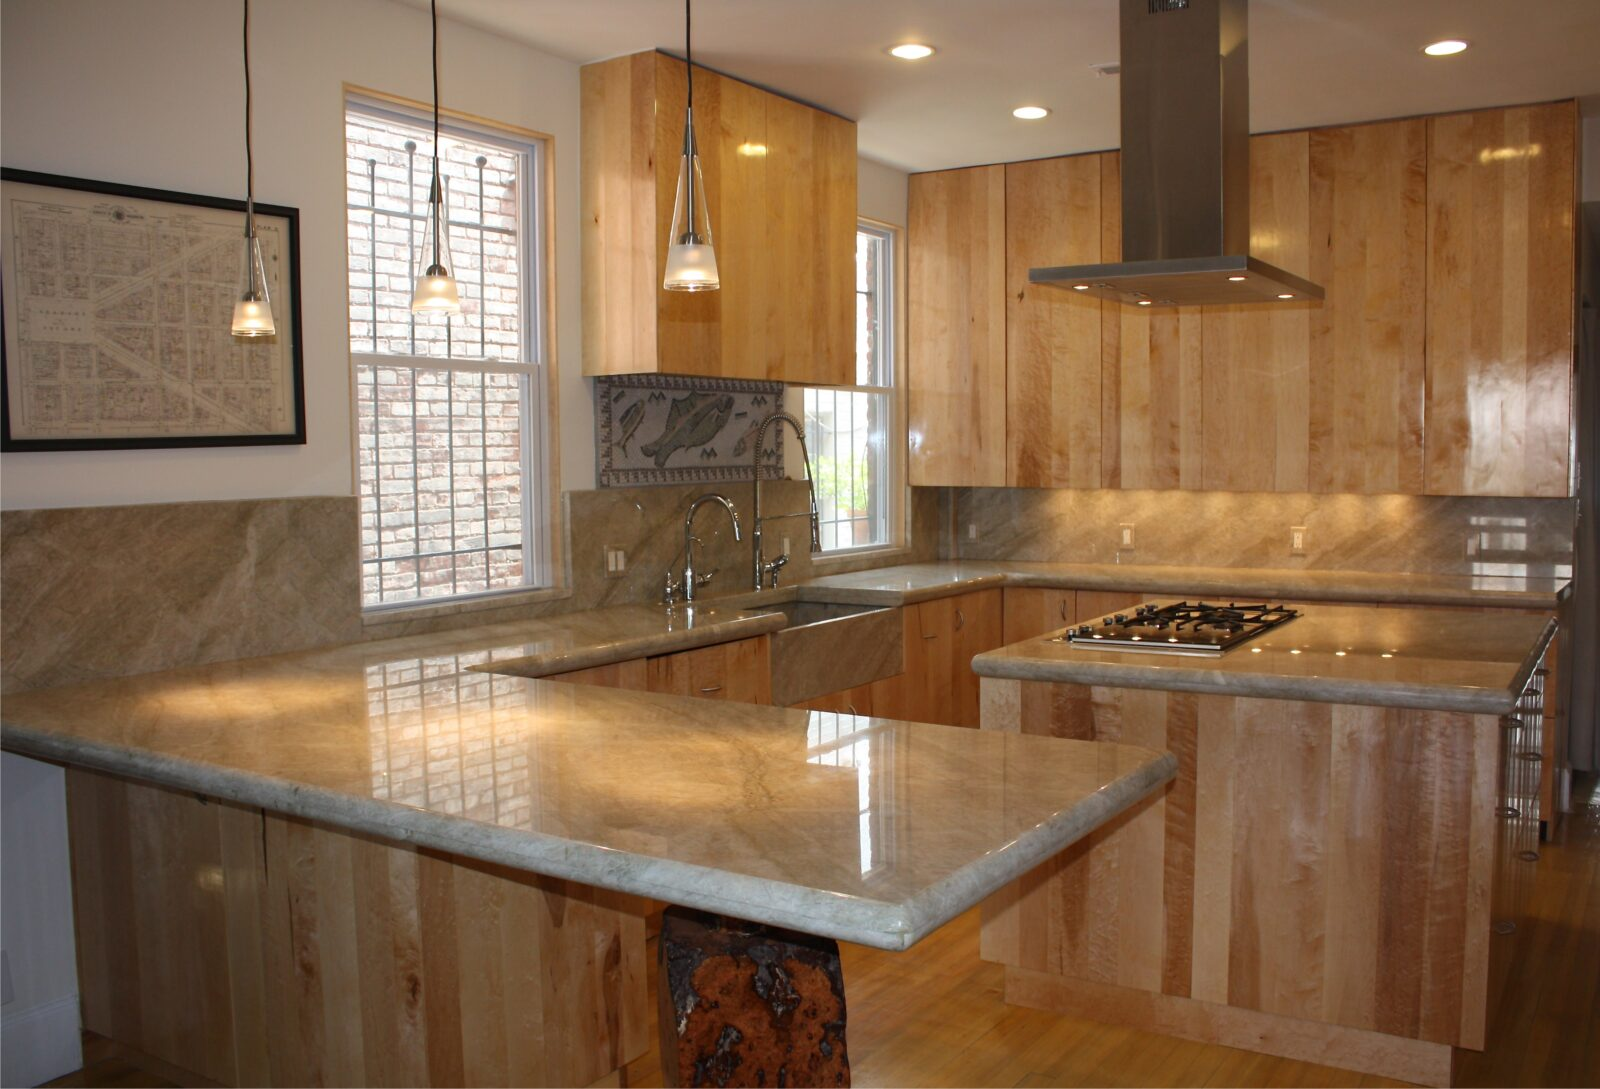 Countertop Kitchen Cabinet : Kitchen Cabinets Phoenix Refinishing Bravo Resurfacing